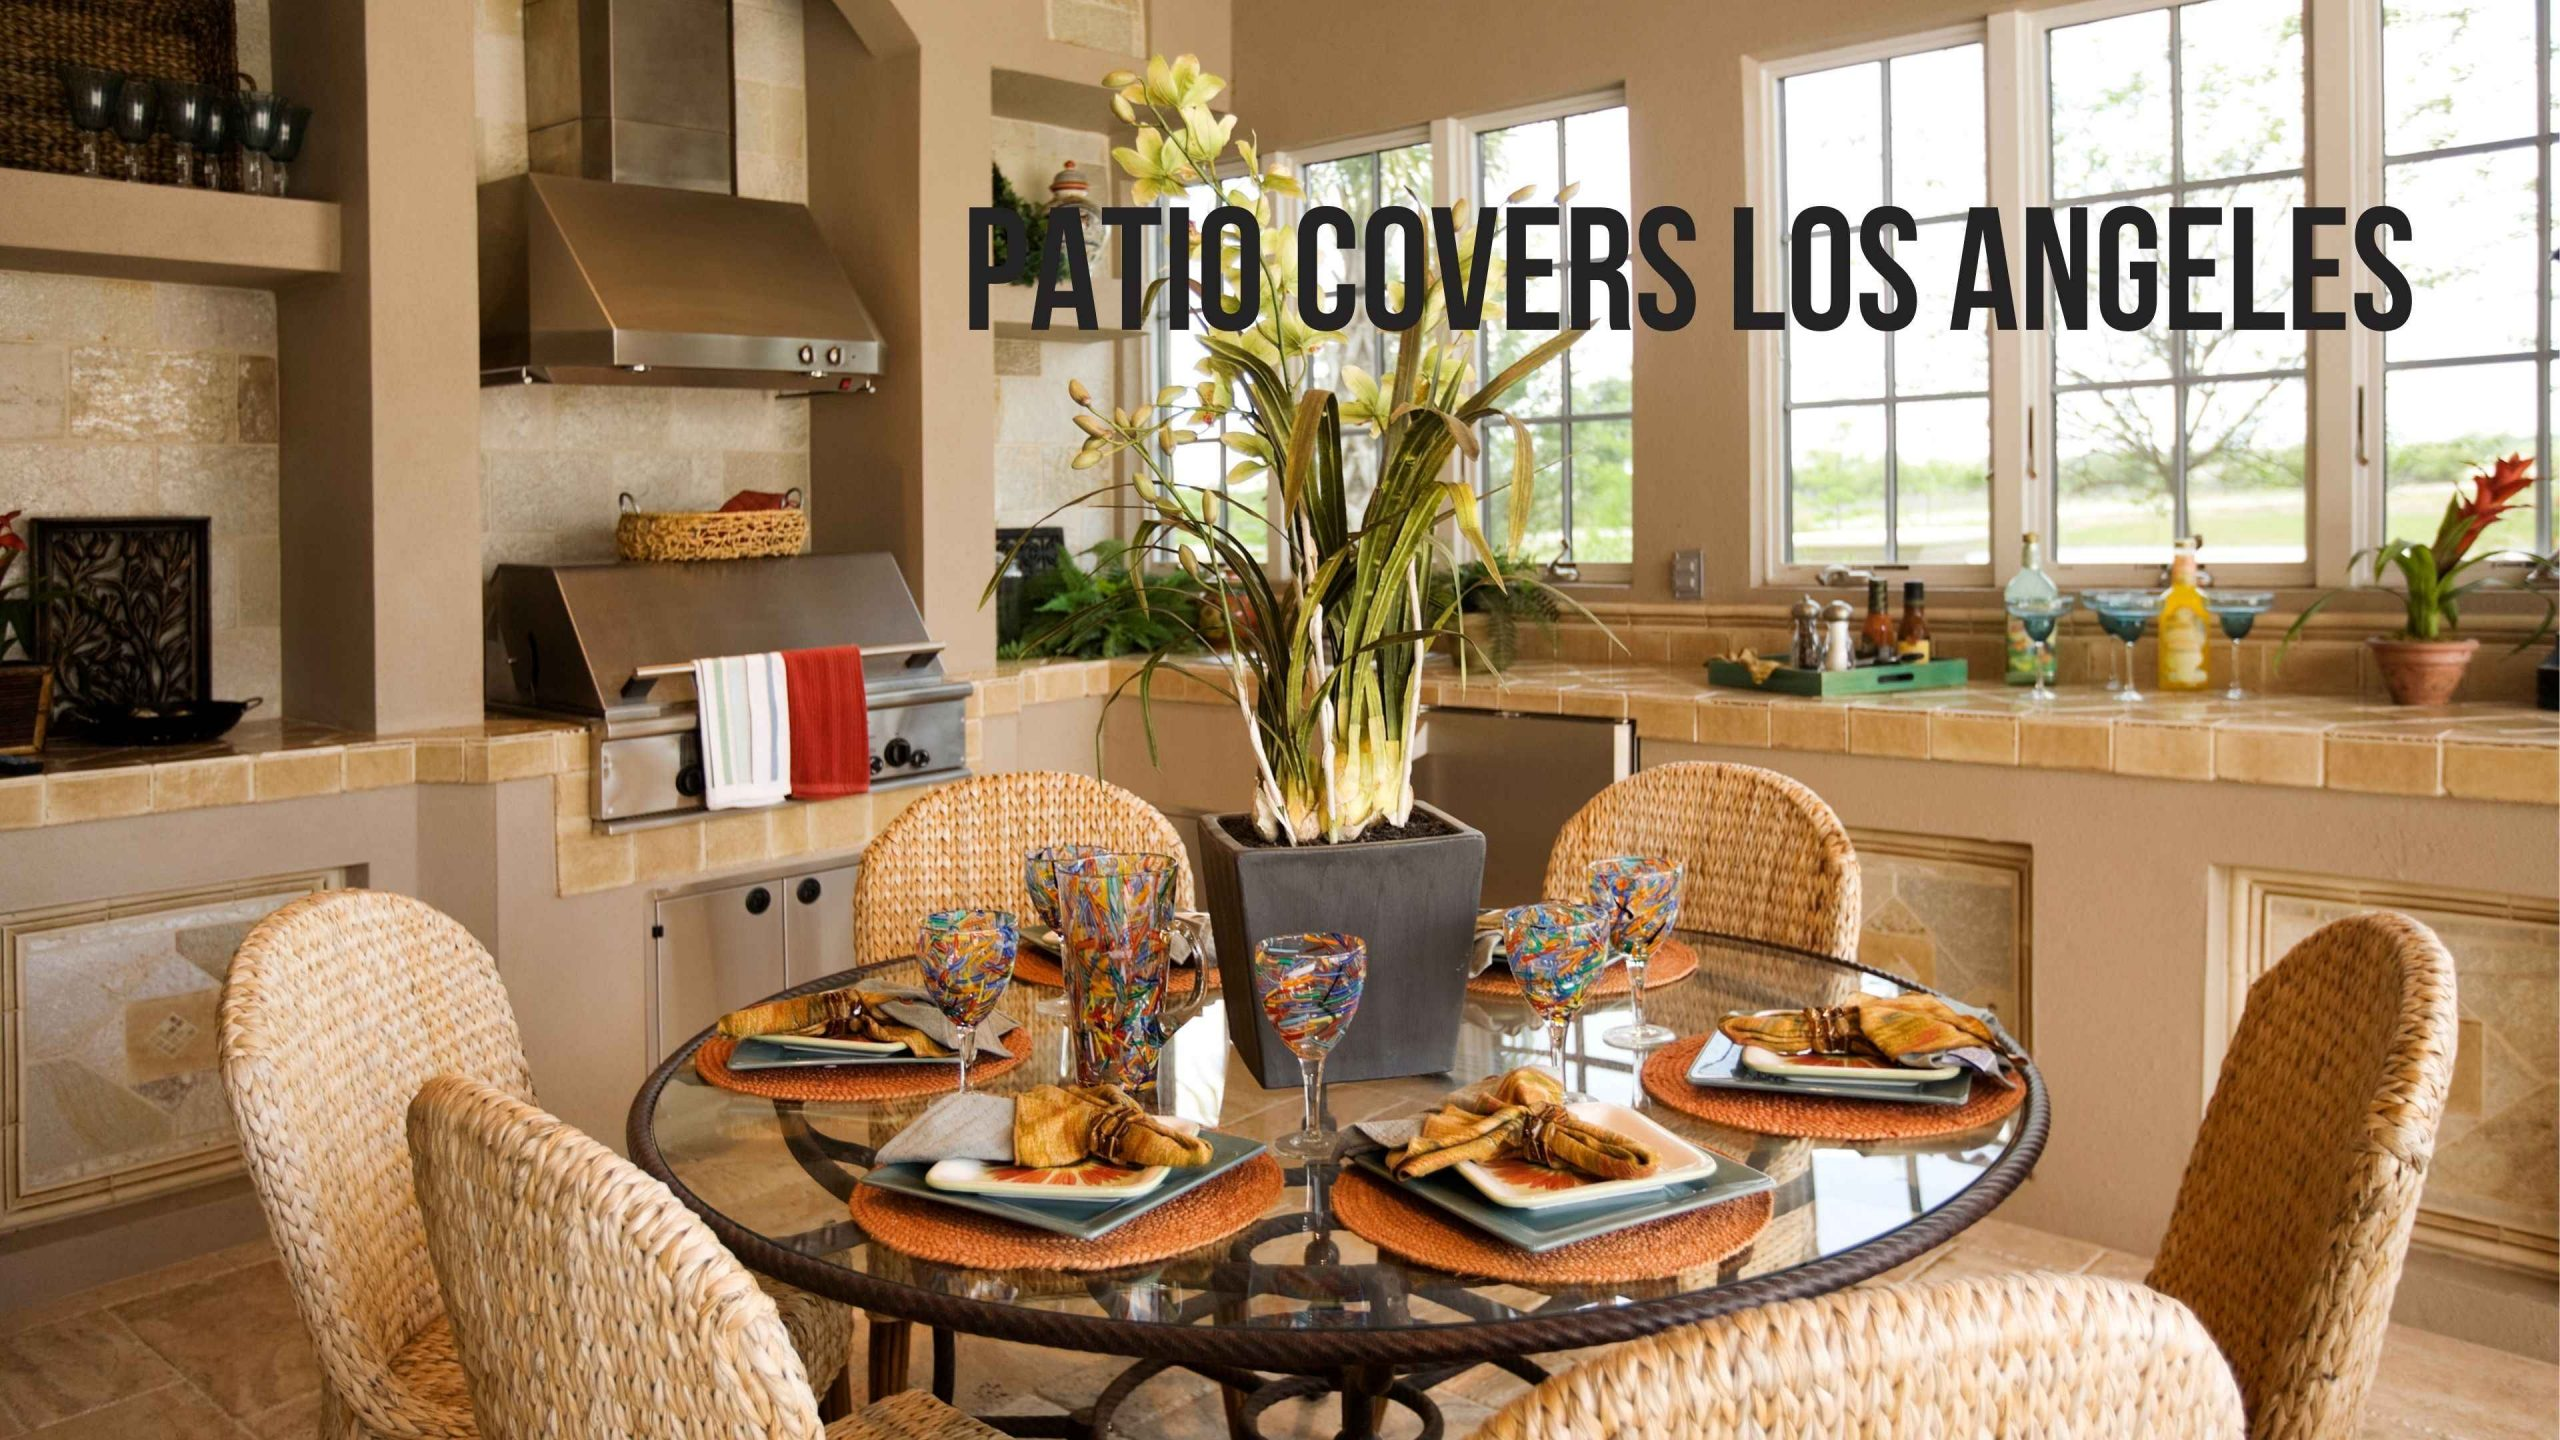 Patio Covers Los Angeles